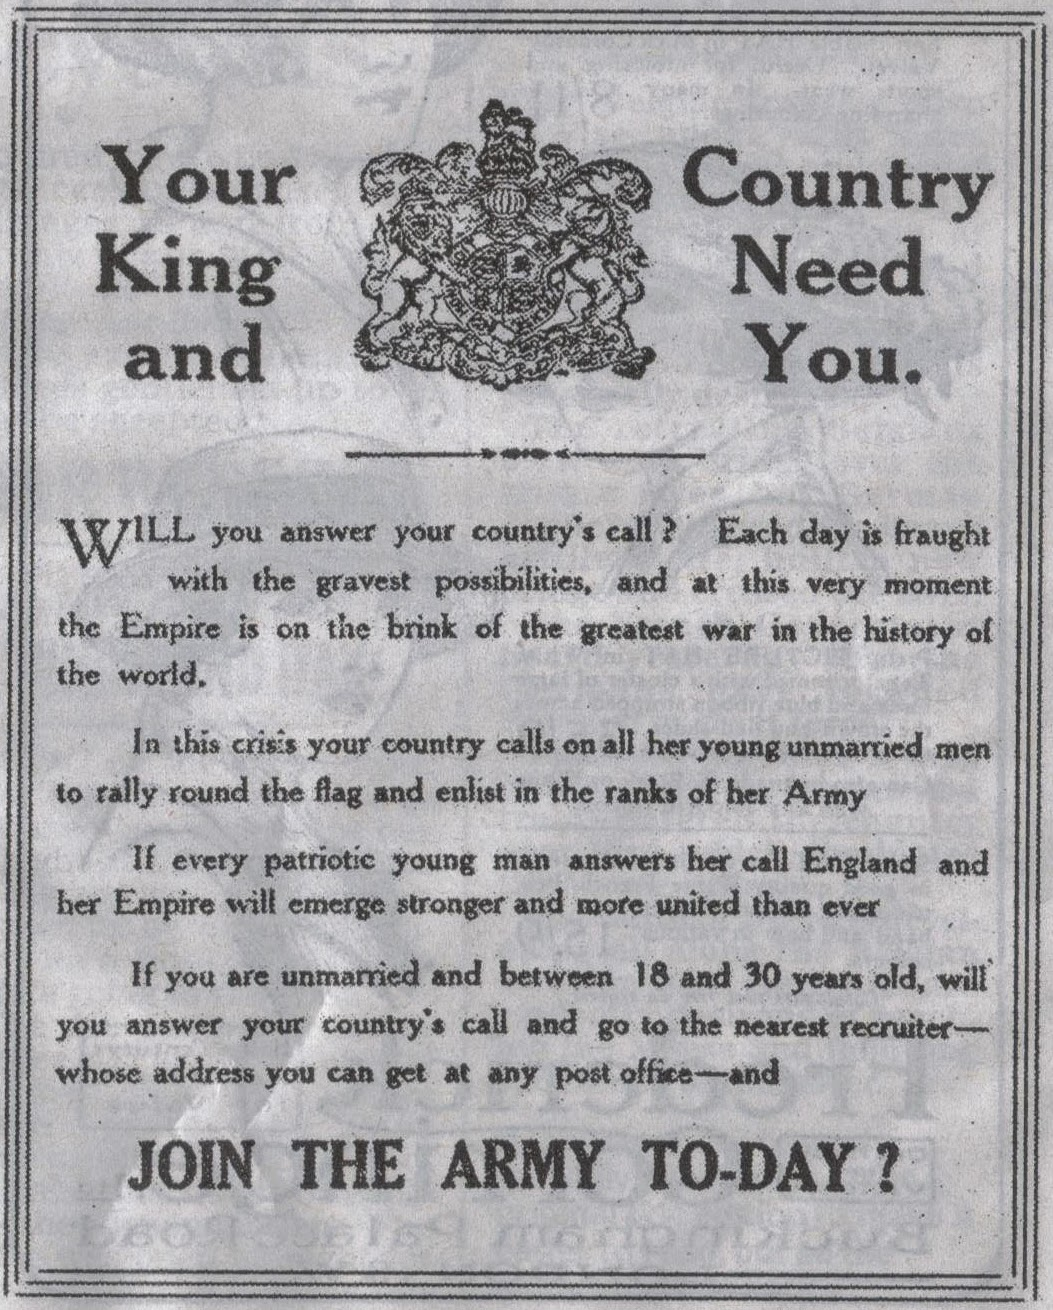 1914 Join the Army advert